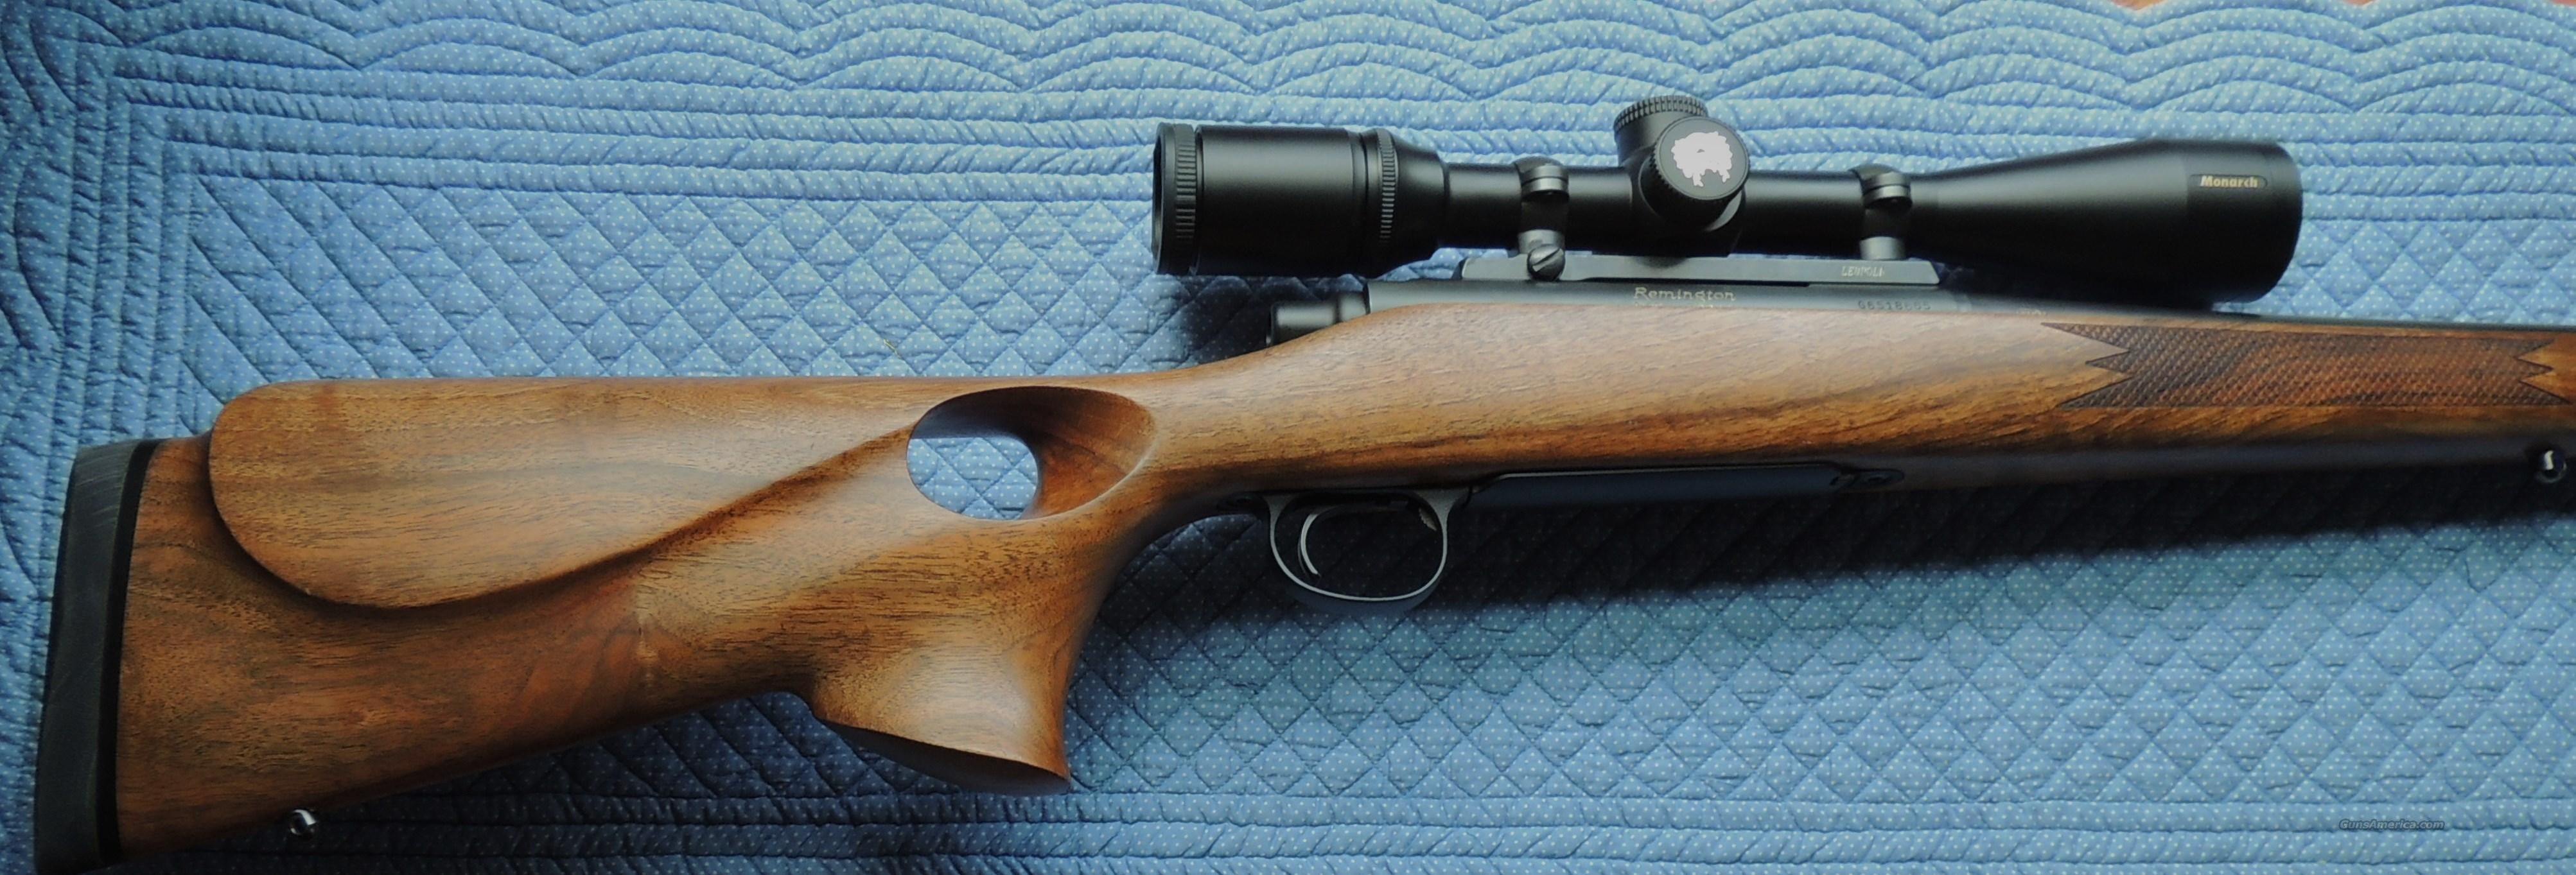 Custom Remington 700 left hand 30-06 A Gentleman's rifle  Guns > Shotguns > Ugartechea Shotguns